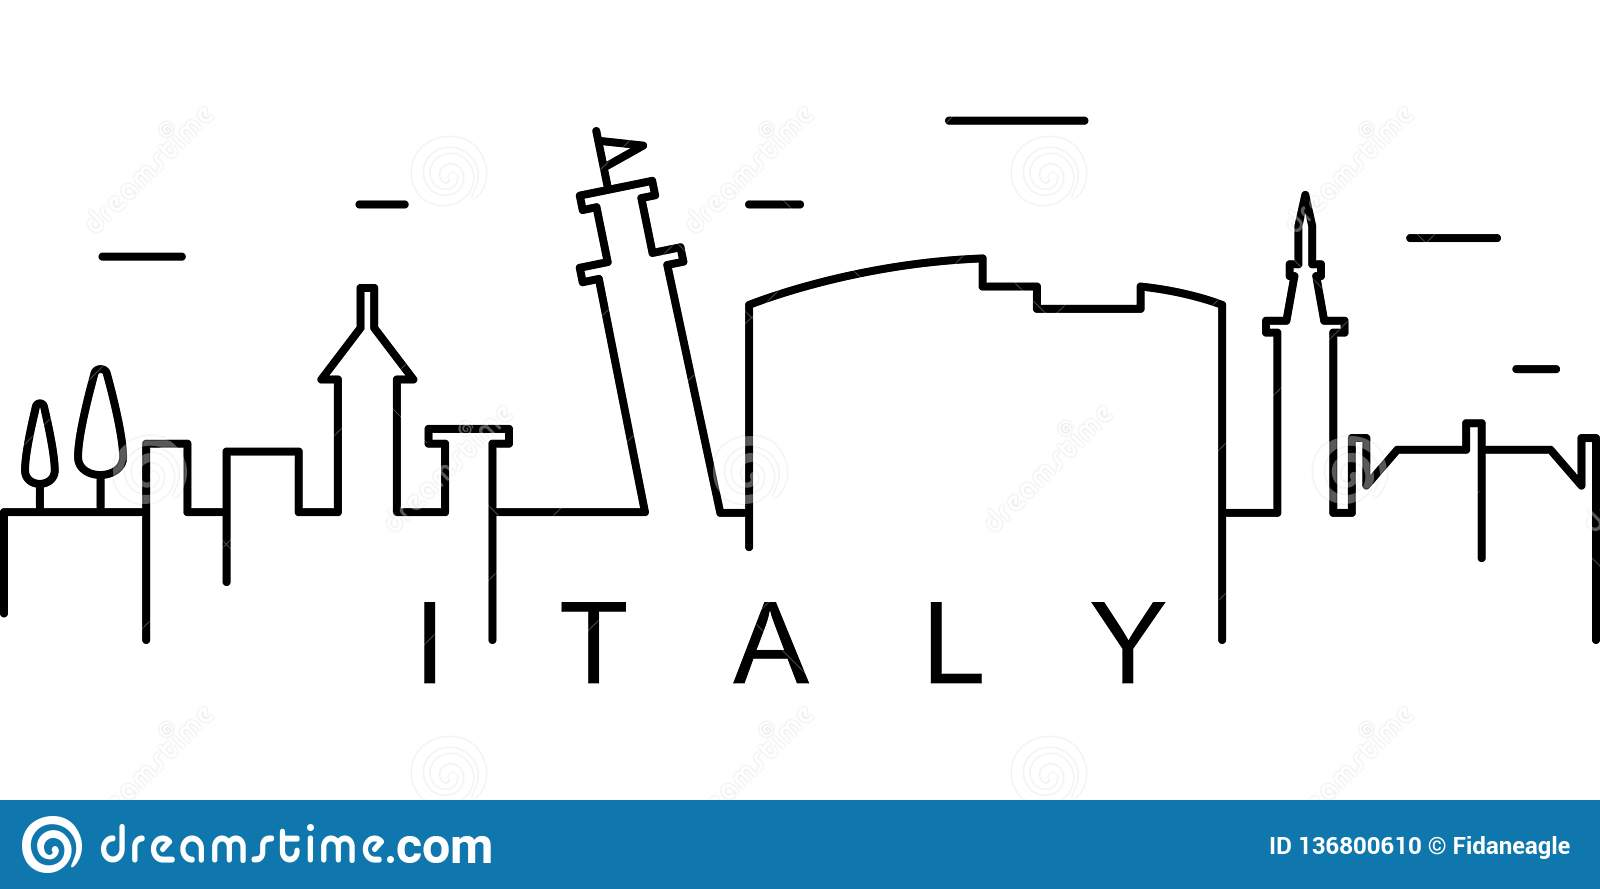 Italy outline icon. Can be used for web, logo, mobile app, UI, UX